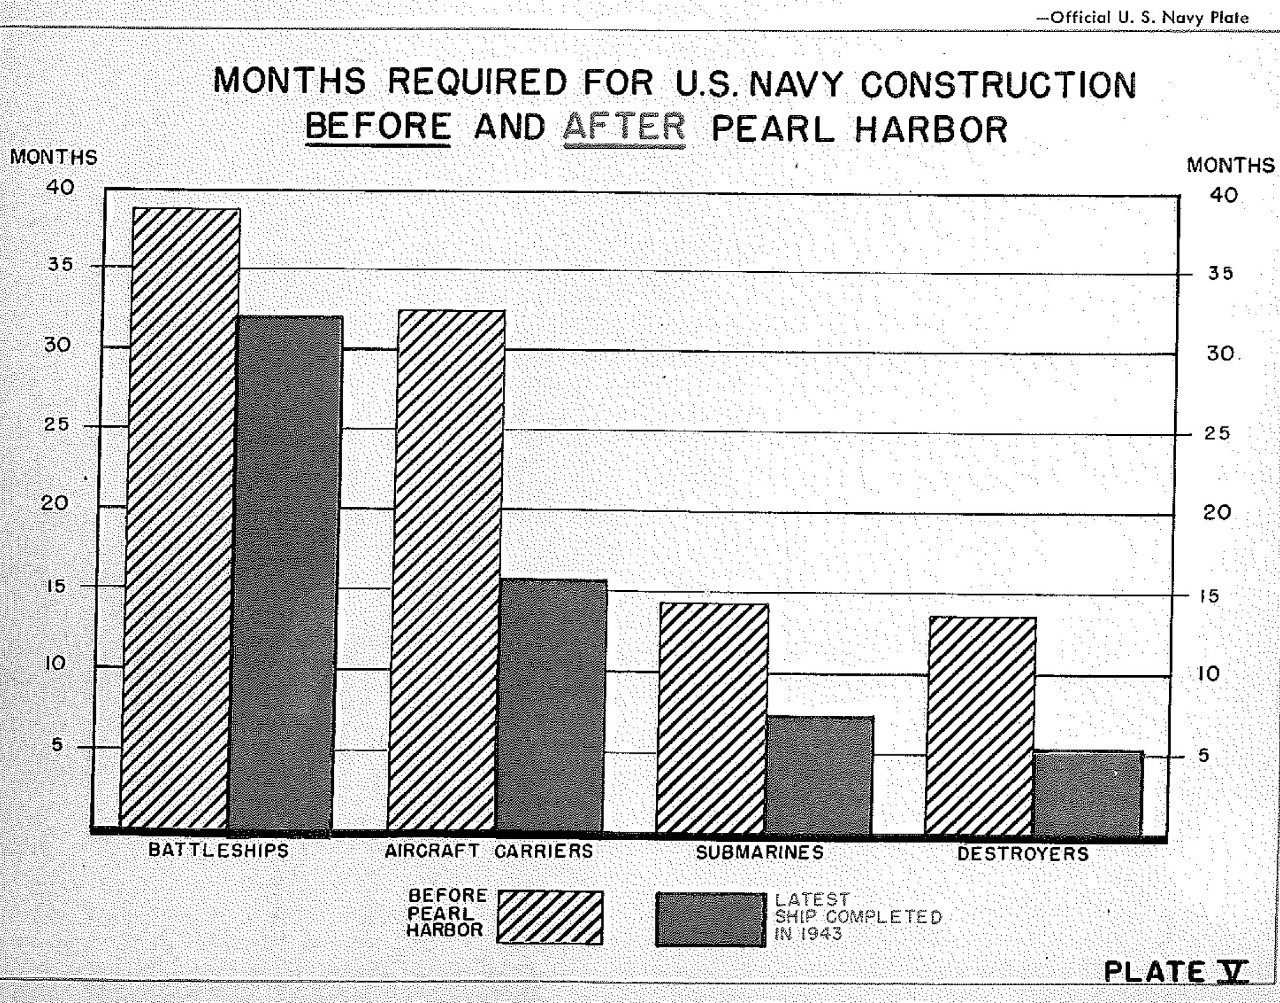 <p>Months required for U.S. Navy construction before and after Pearl Harbor, Plate V&nbsp;</p>